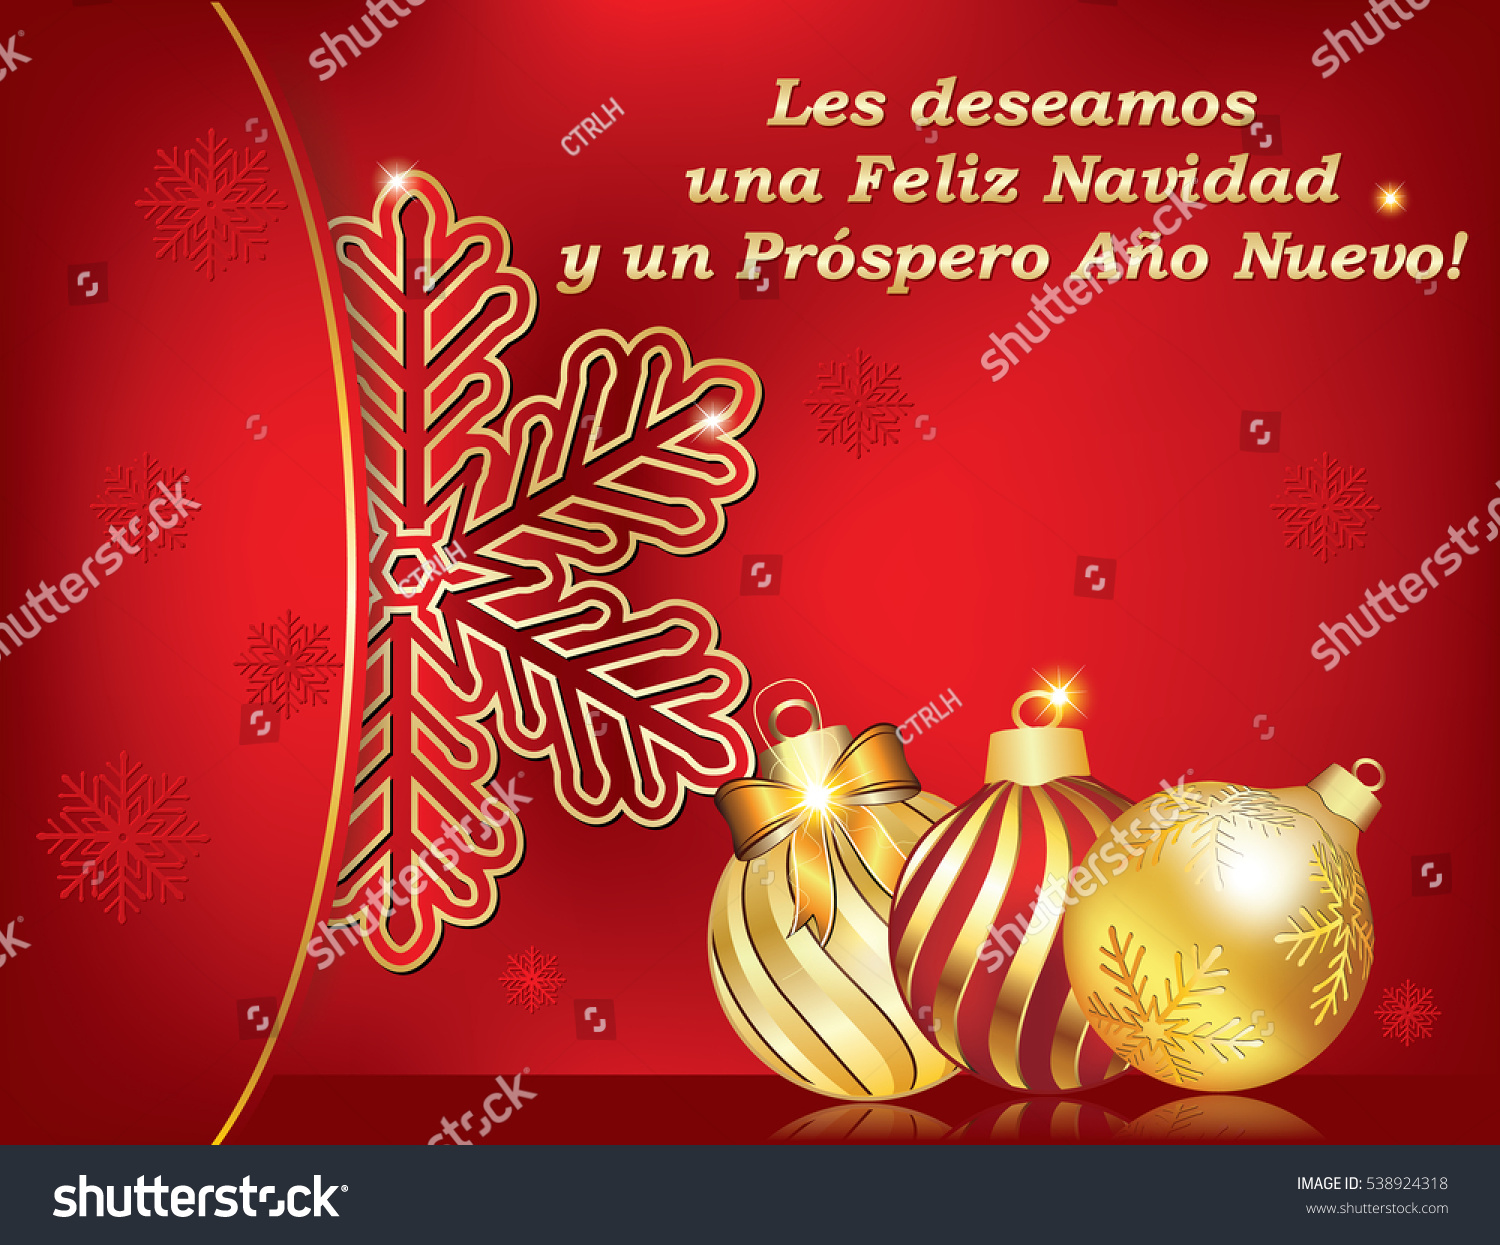 Spanish seasons greetings christmas new year stock illustration spanish seasons greetings christmas new year card les deseamos feliz navidad y feliz kristyandbryce Images